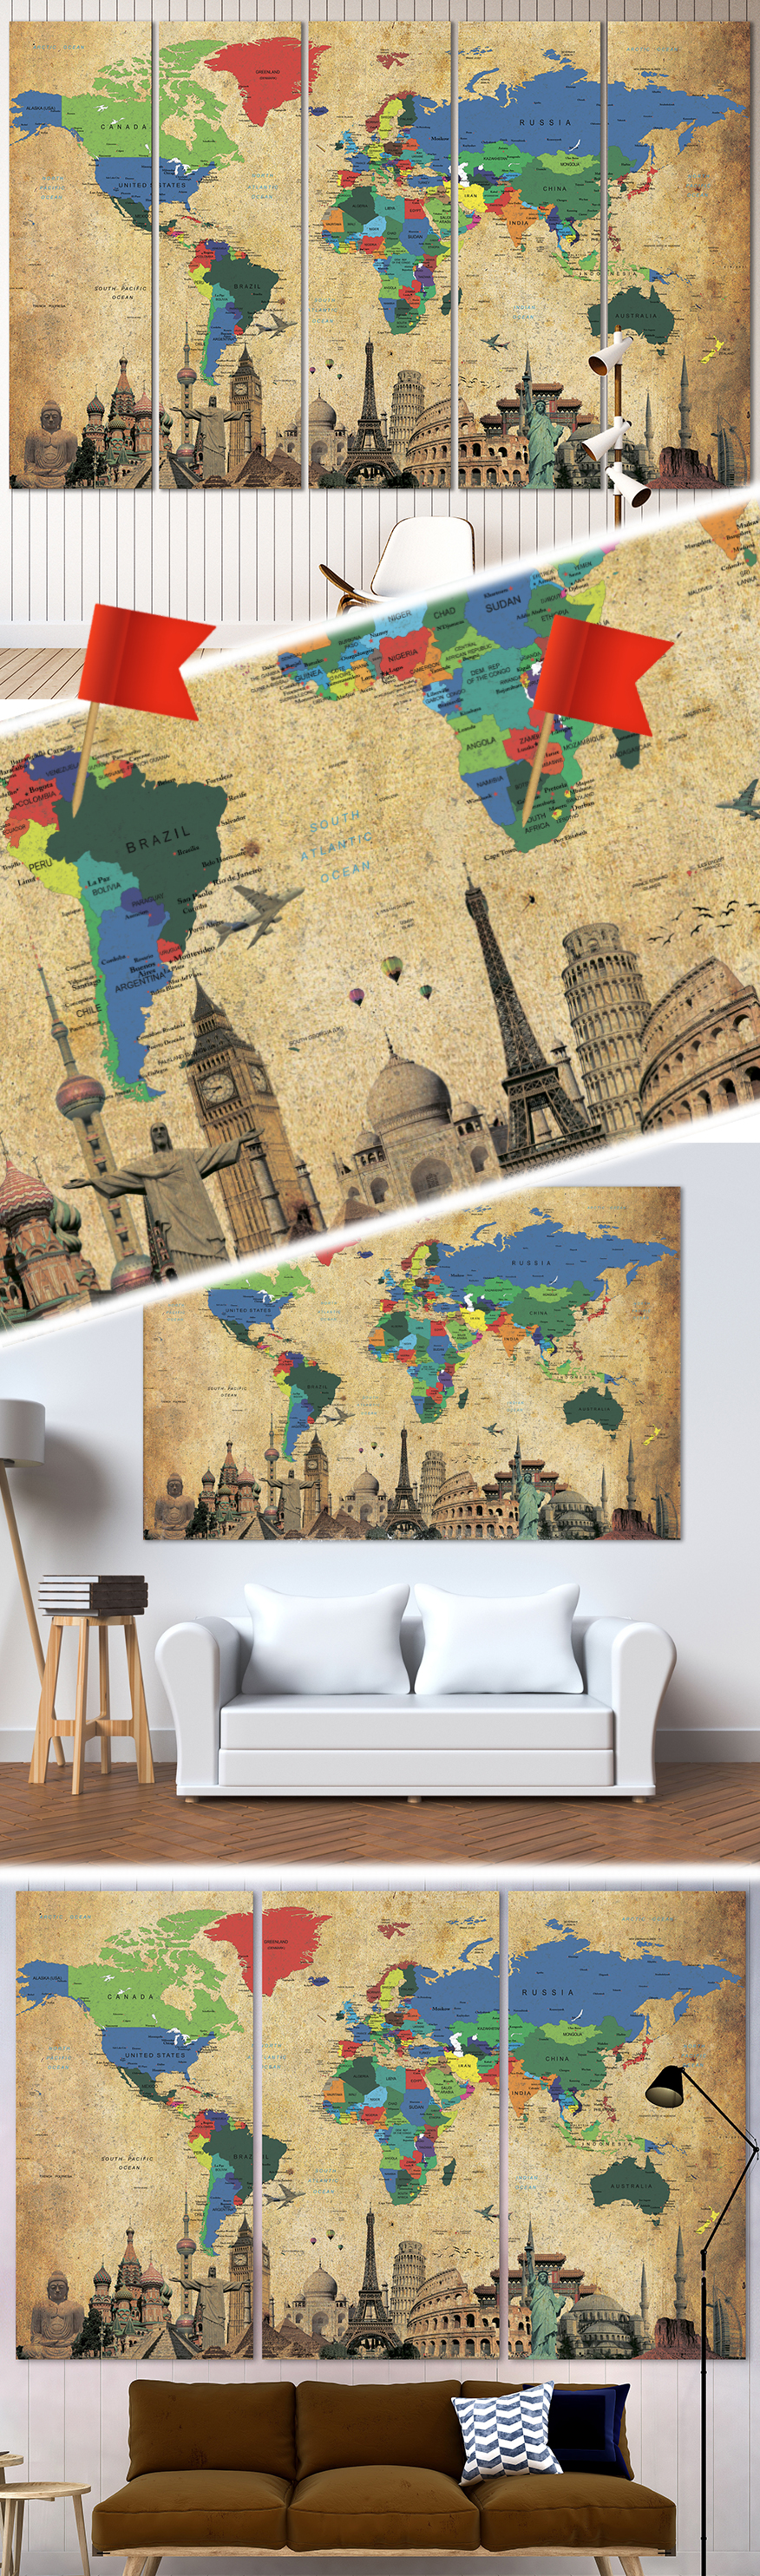 Brown World Map №3027 Canvas Print | Canvases, Wrapped canvas and Brown